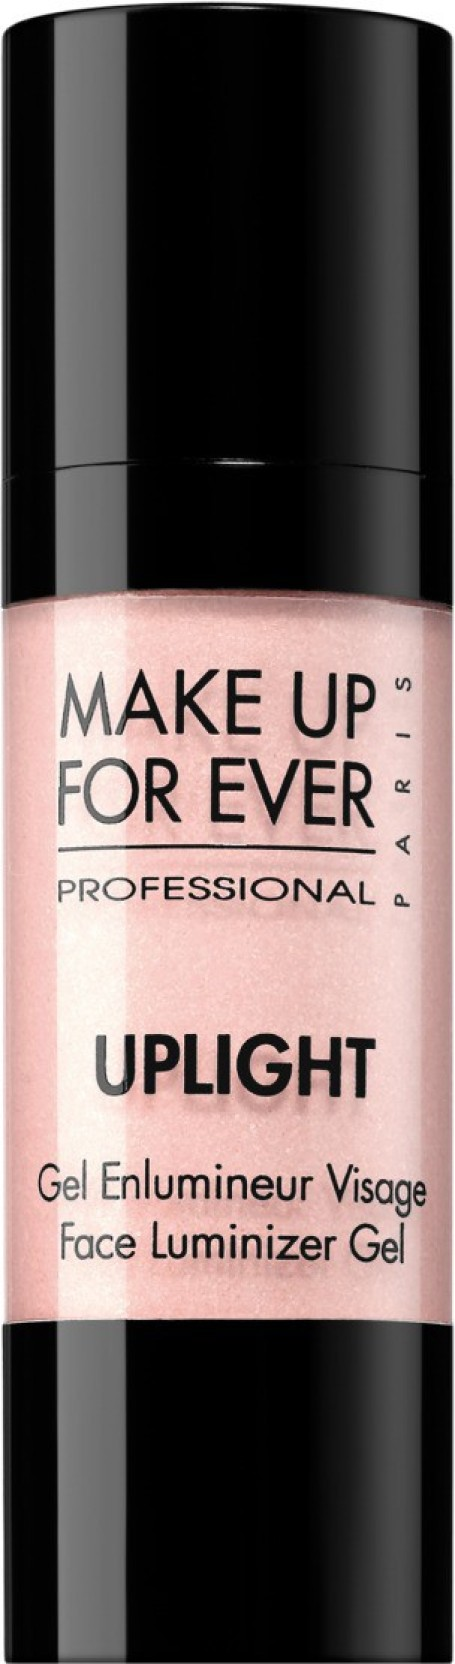 Makeup Forever Face Luminizer Gel